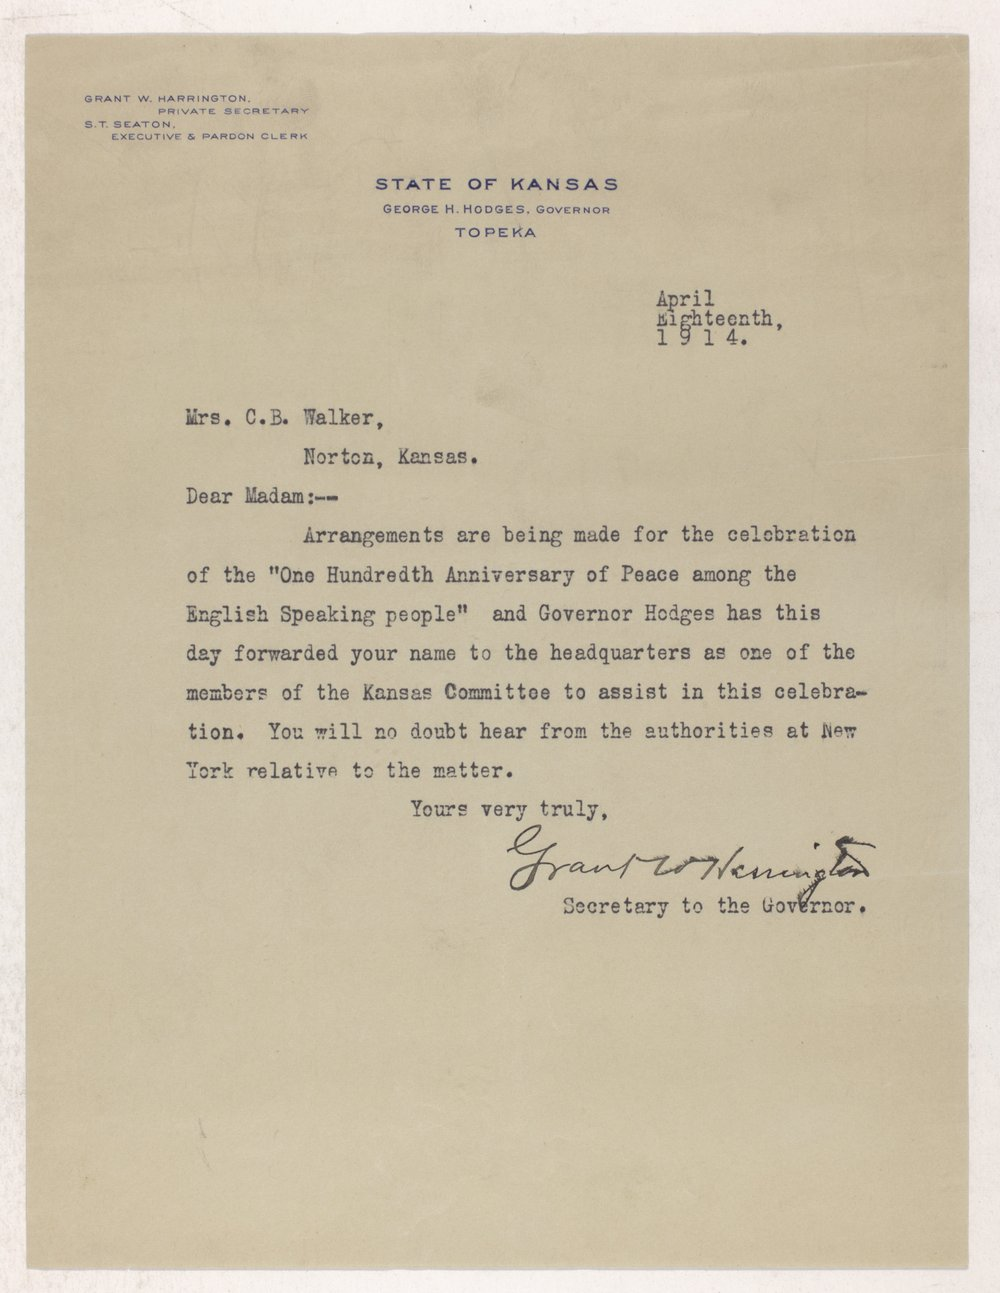 Ida M. Walker papers - 1 100th Anniversary of Peace, 1914